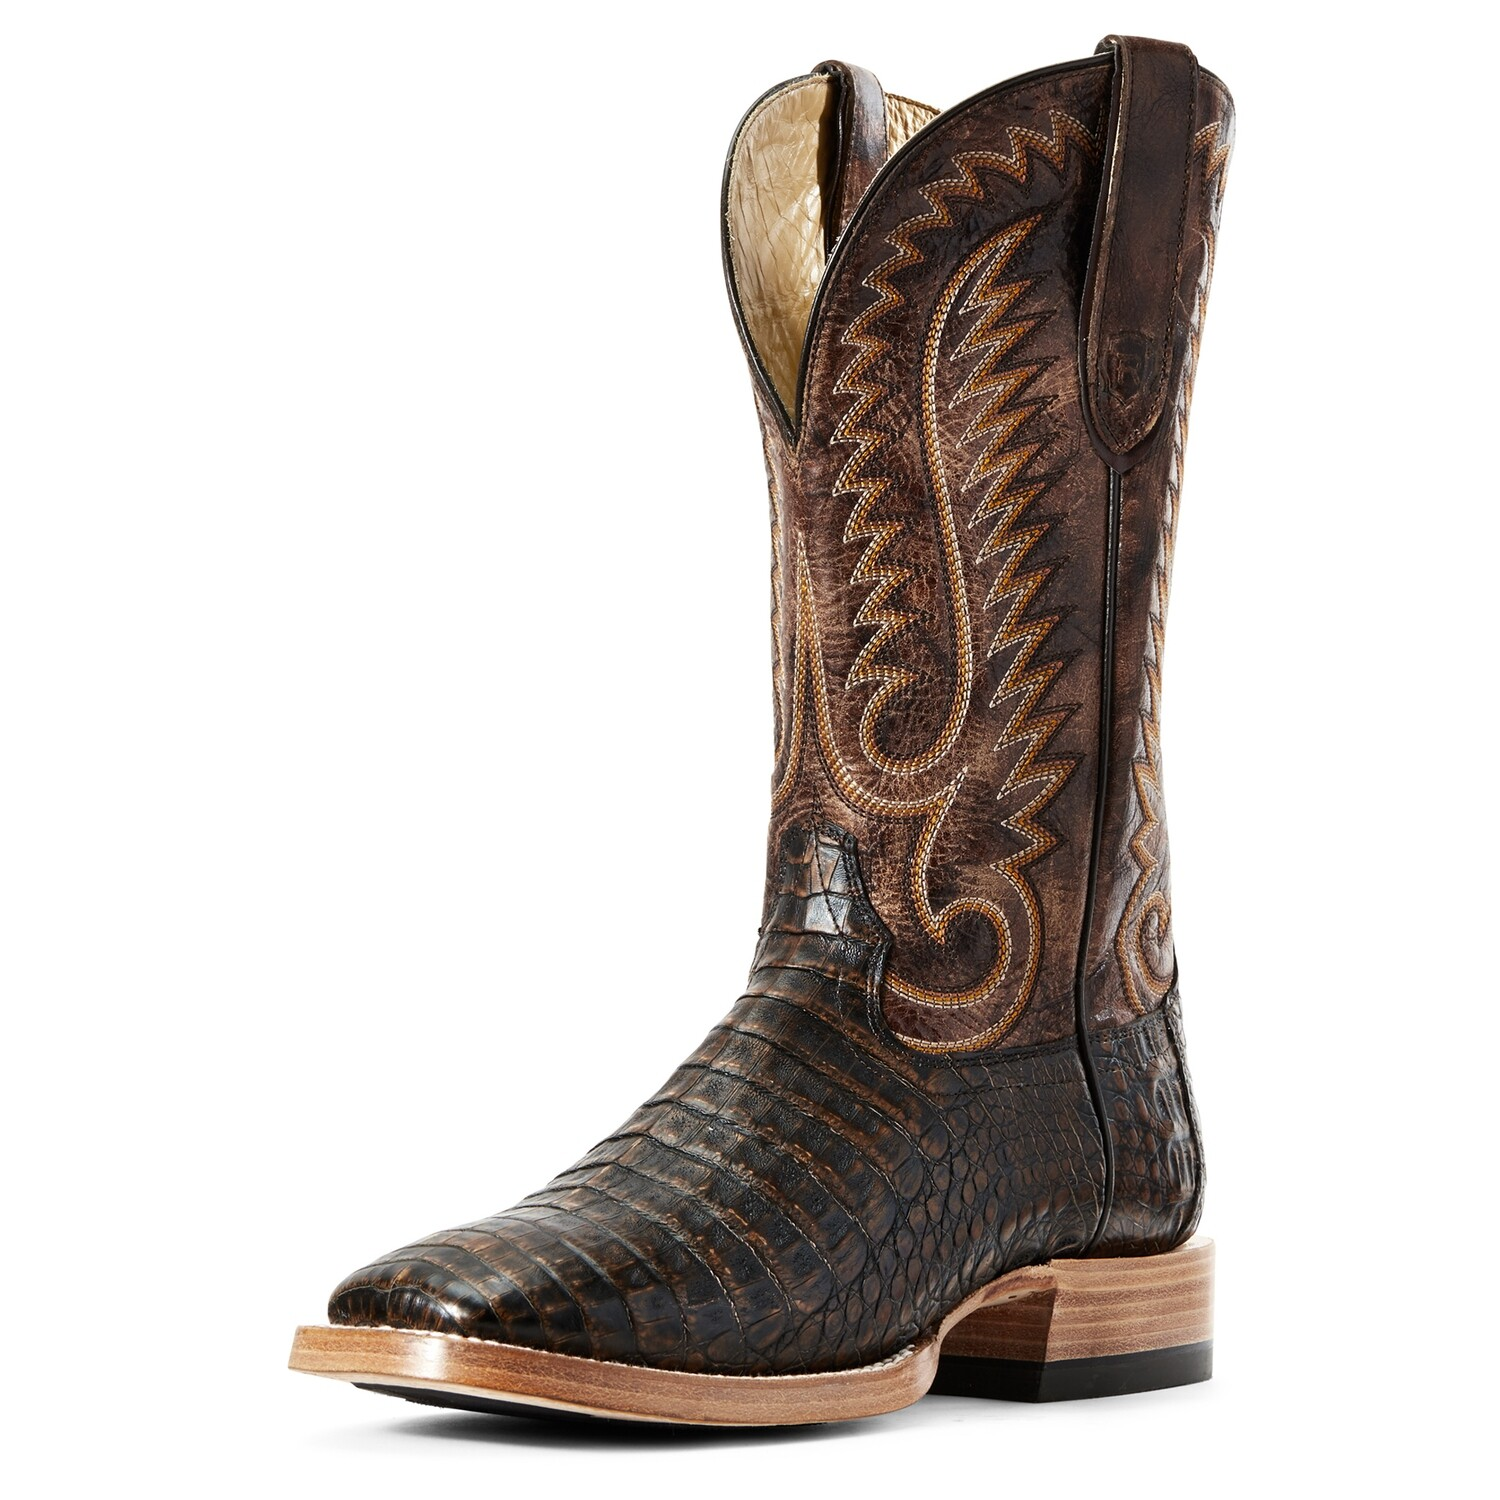 10029618 Ariat Relentless Pro Toffee Belly Caiman - ONLINE ONLY